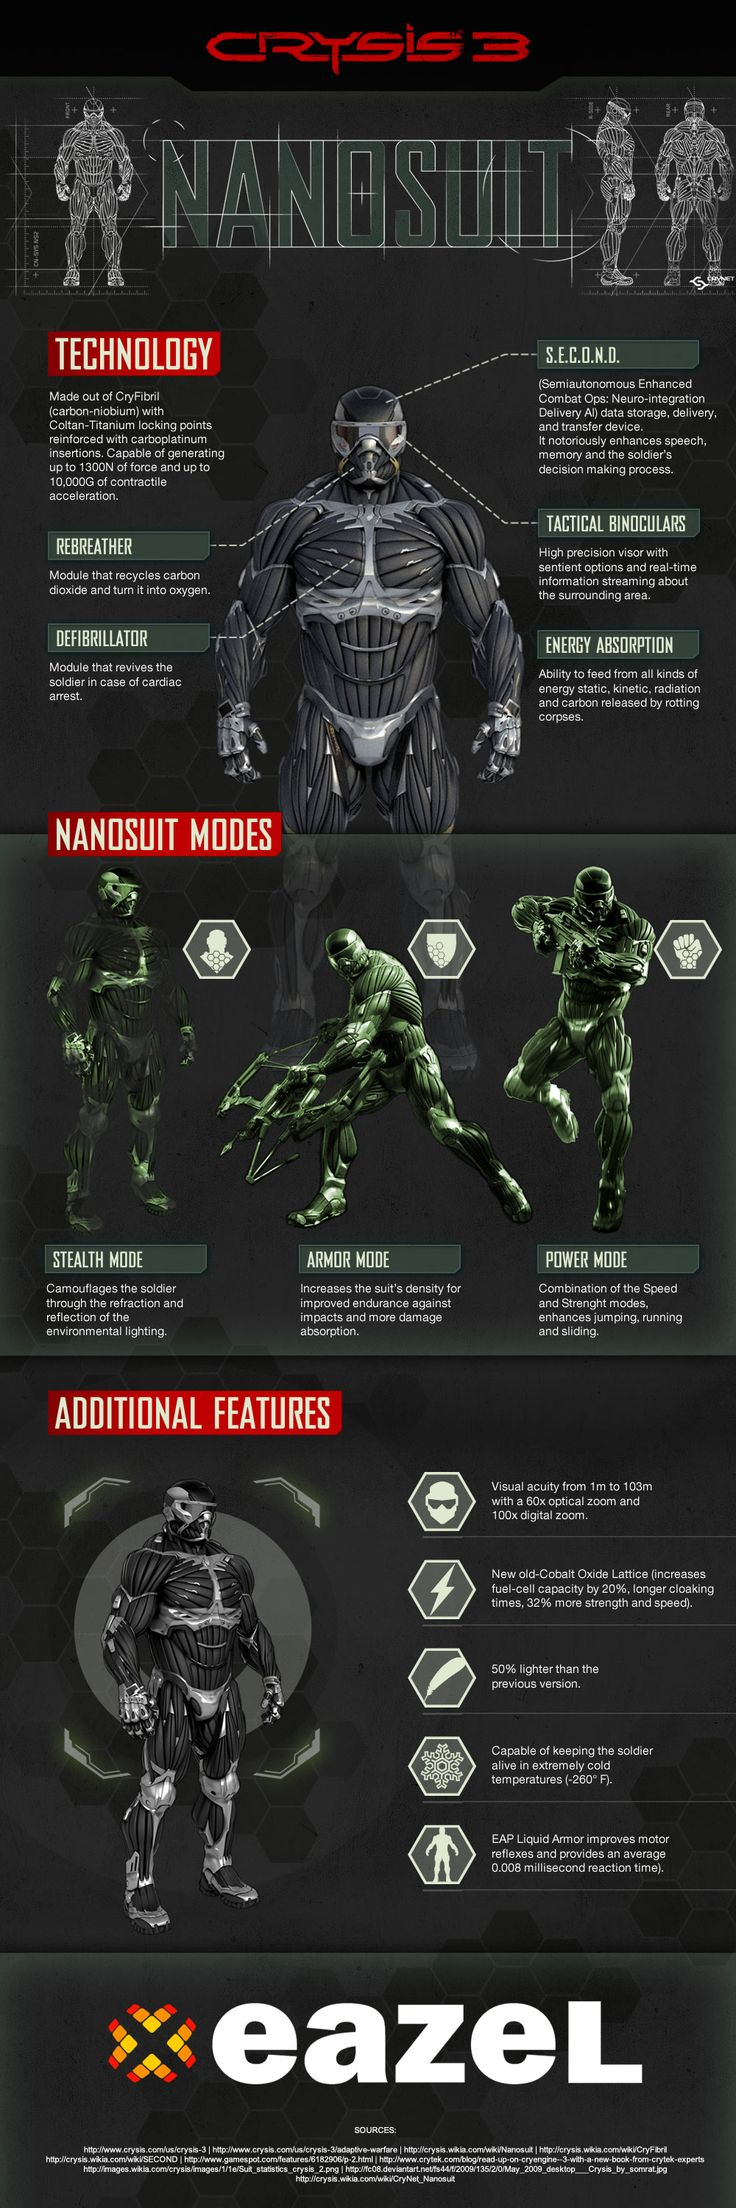 Crysis Nano suit 2.0 #gamer #infographic